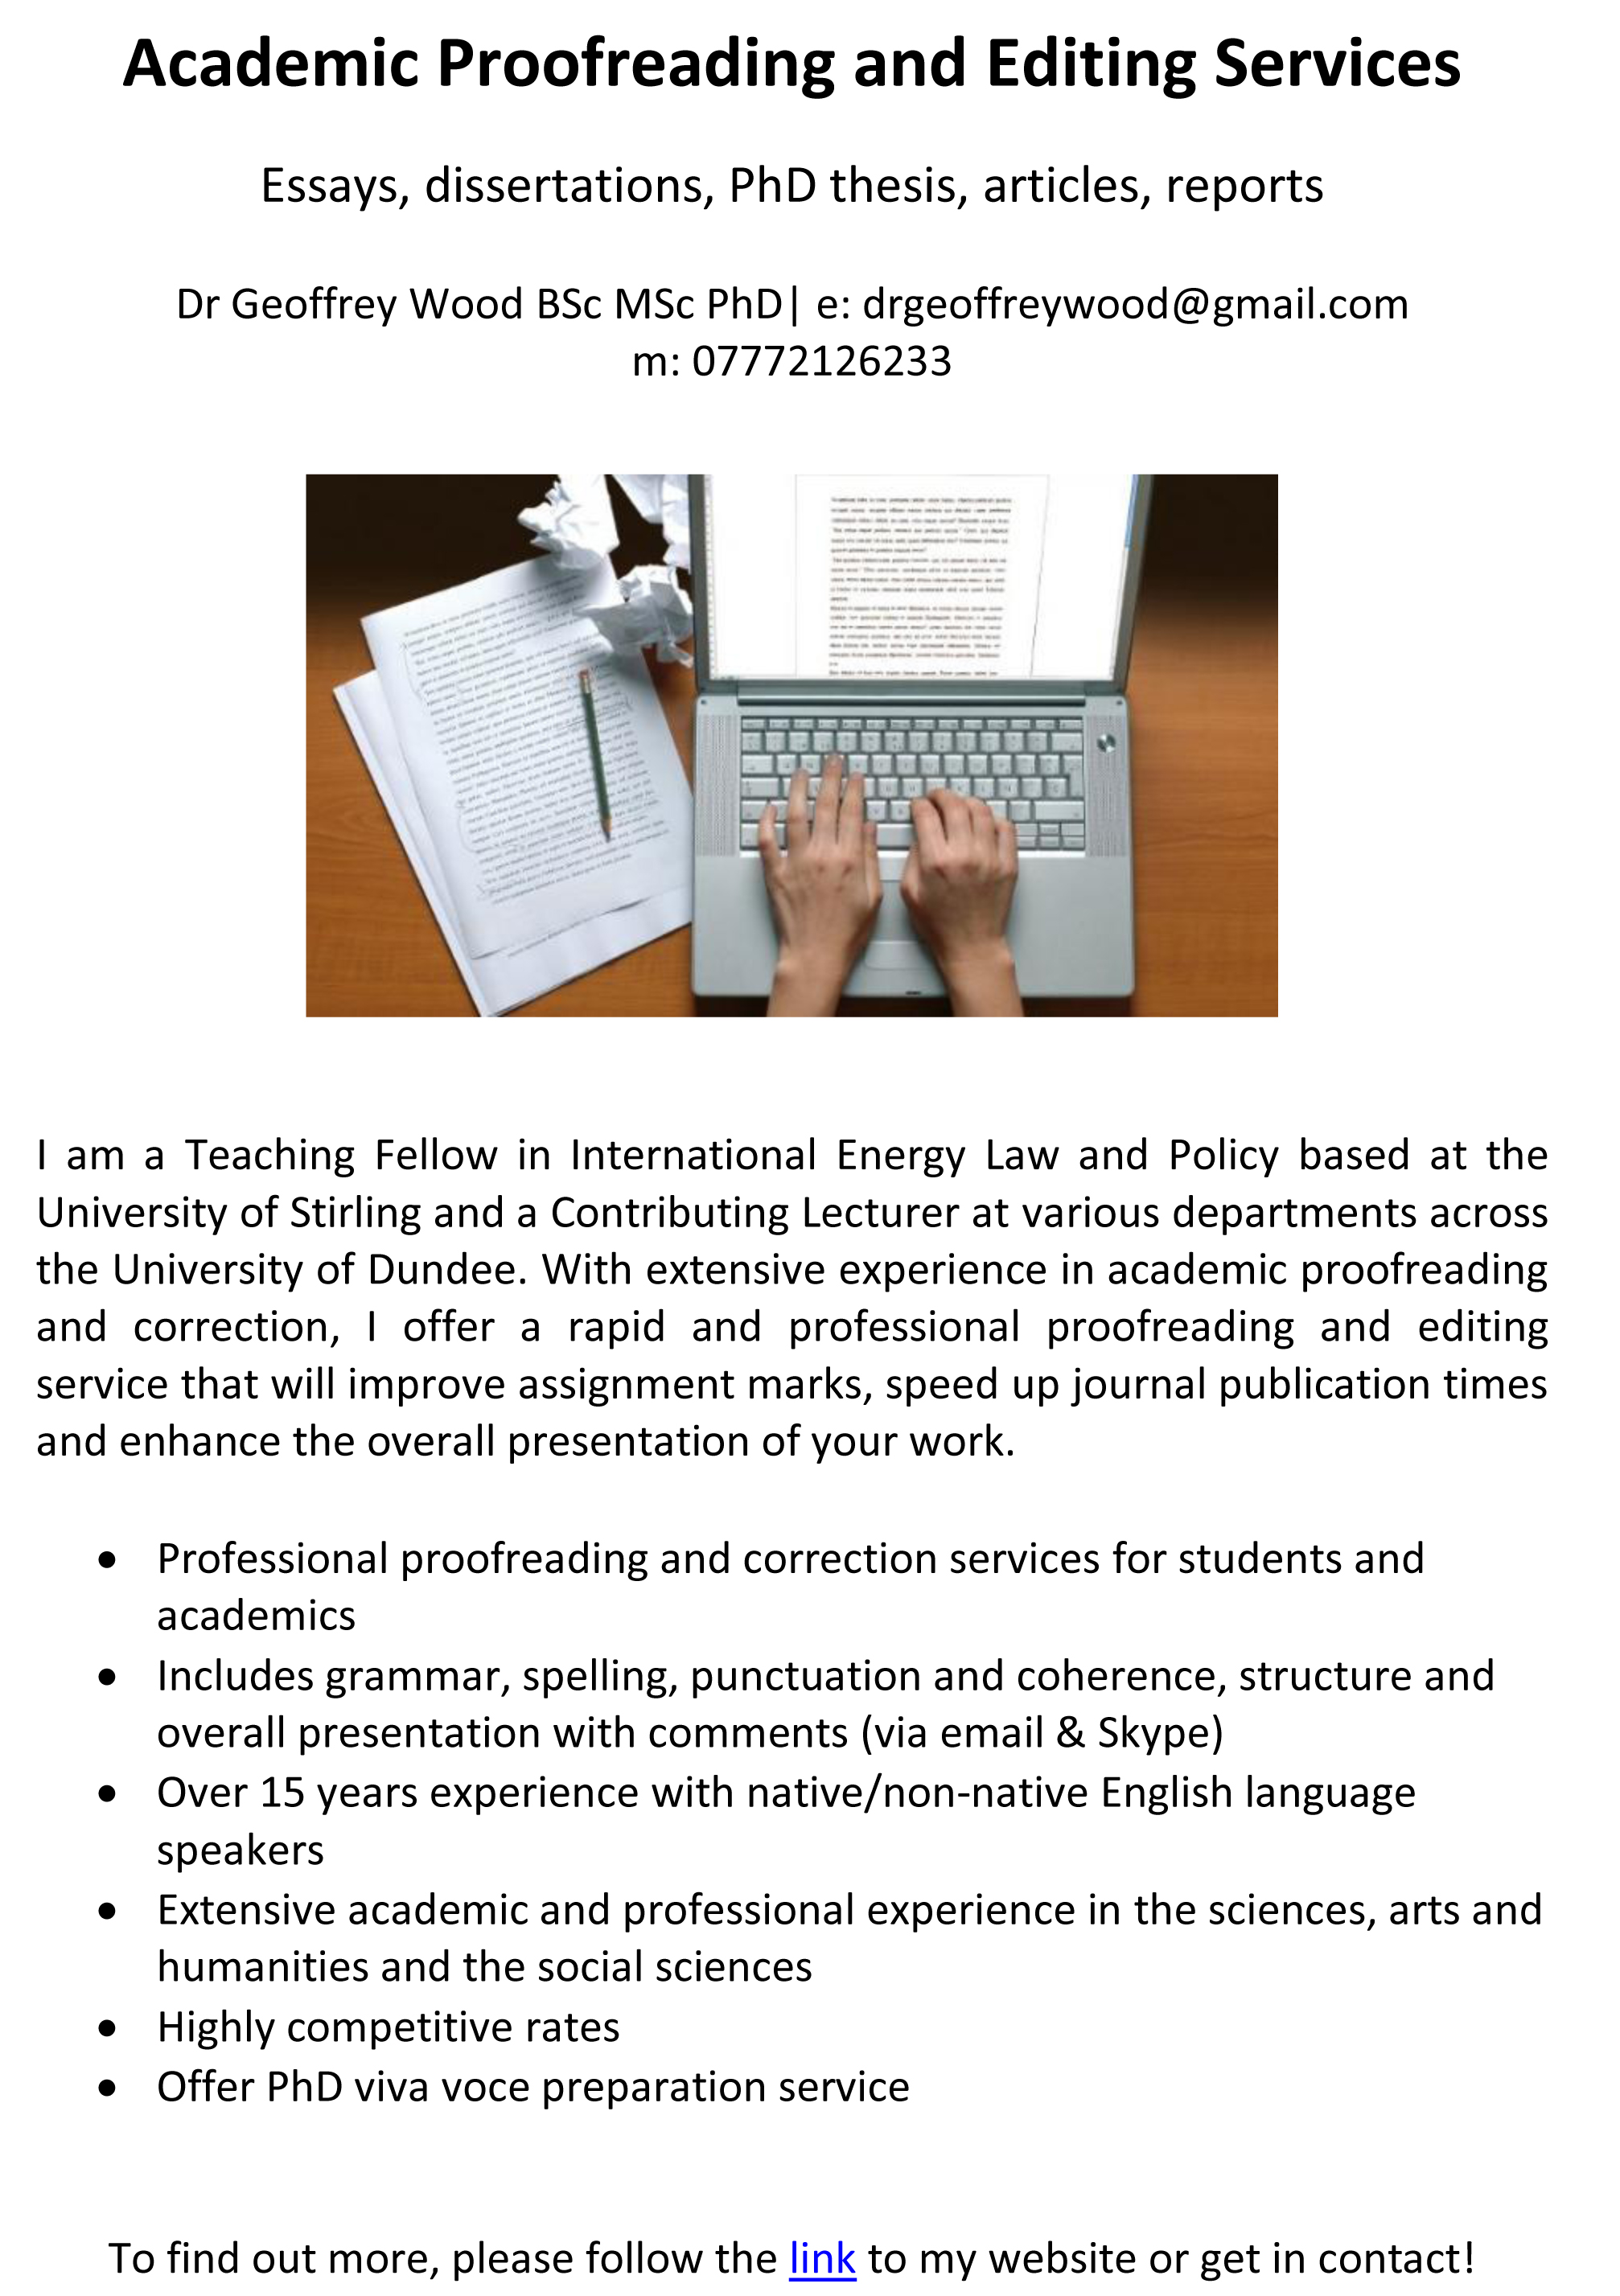 contact me academic proofreading and editing services academic proofreading and editing services brochure 2015